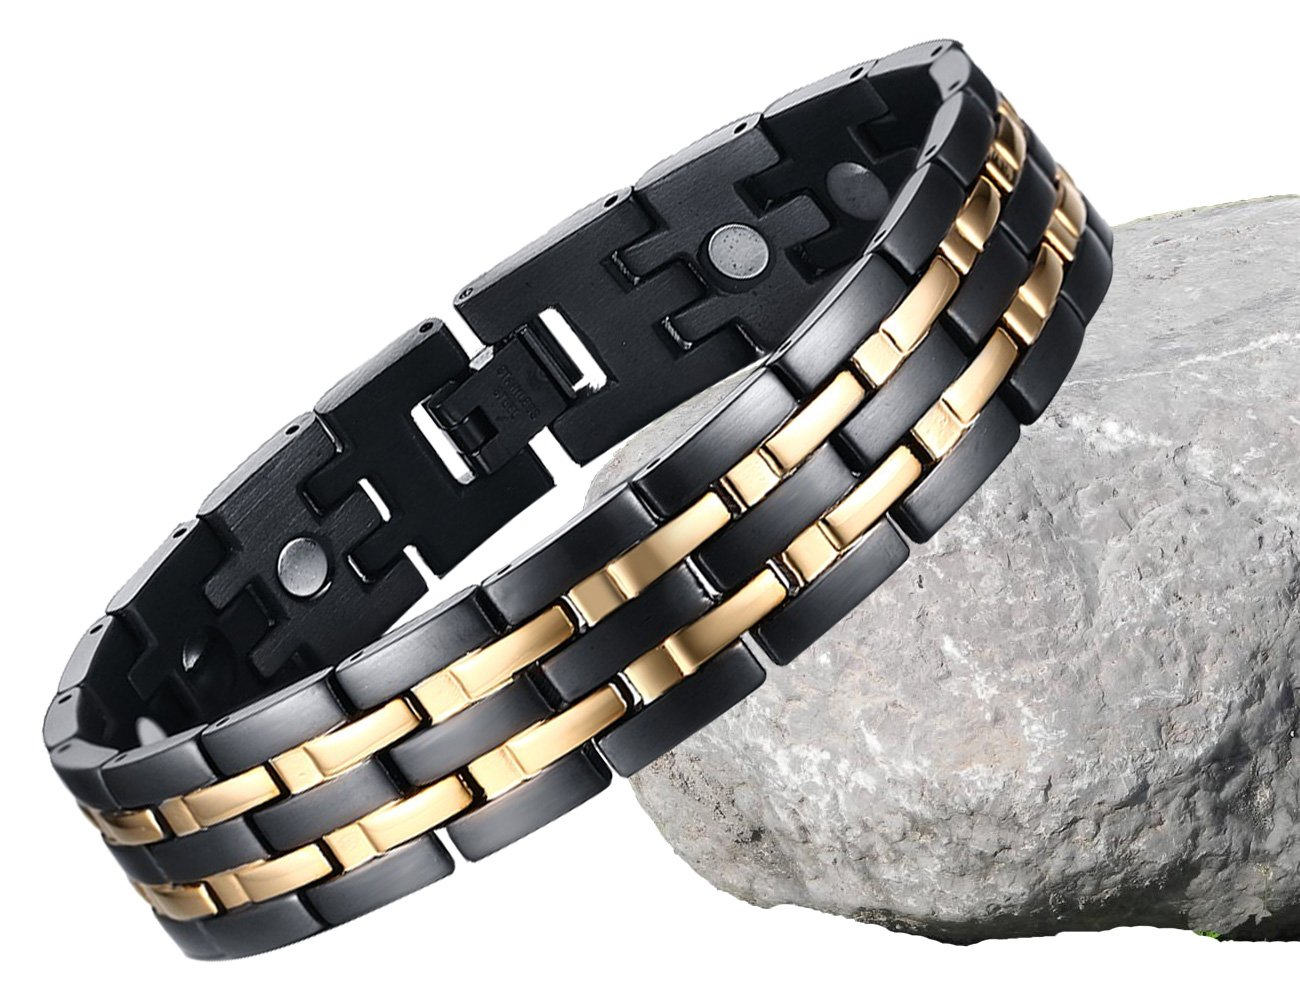 BisLinks® Titanium Magnetic Health Bracelet For Men & Women Germanium Stone Arthritis Chronic Pain Bio Therapy Carpal Tunnel Relief Negative Ion (3000 Gauss Each Magnet) + FREE LINK REMOVAL TOOL by BisLinks® (Image #3)